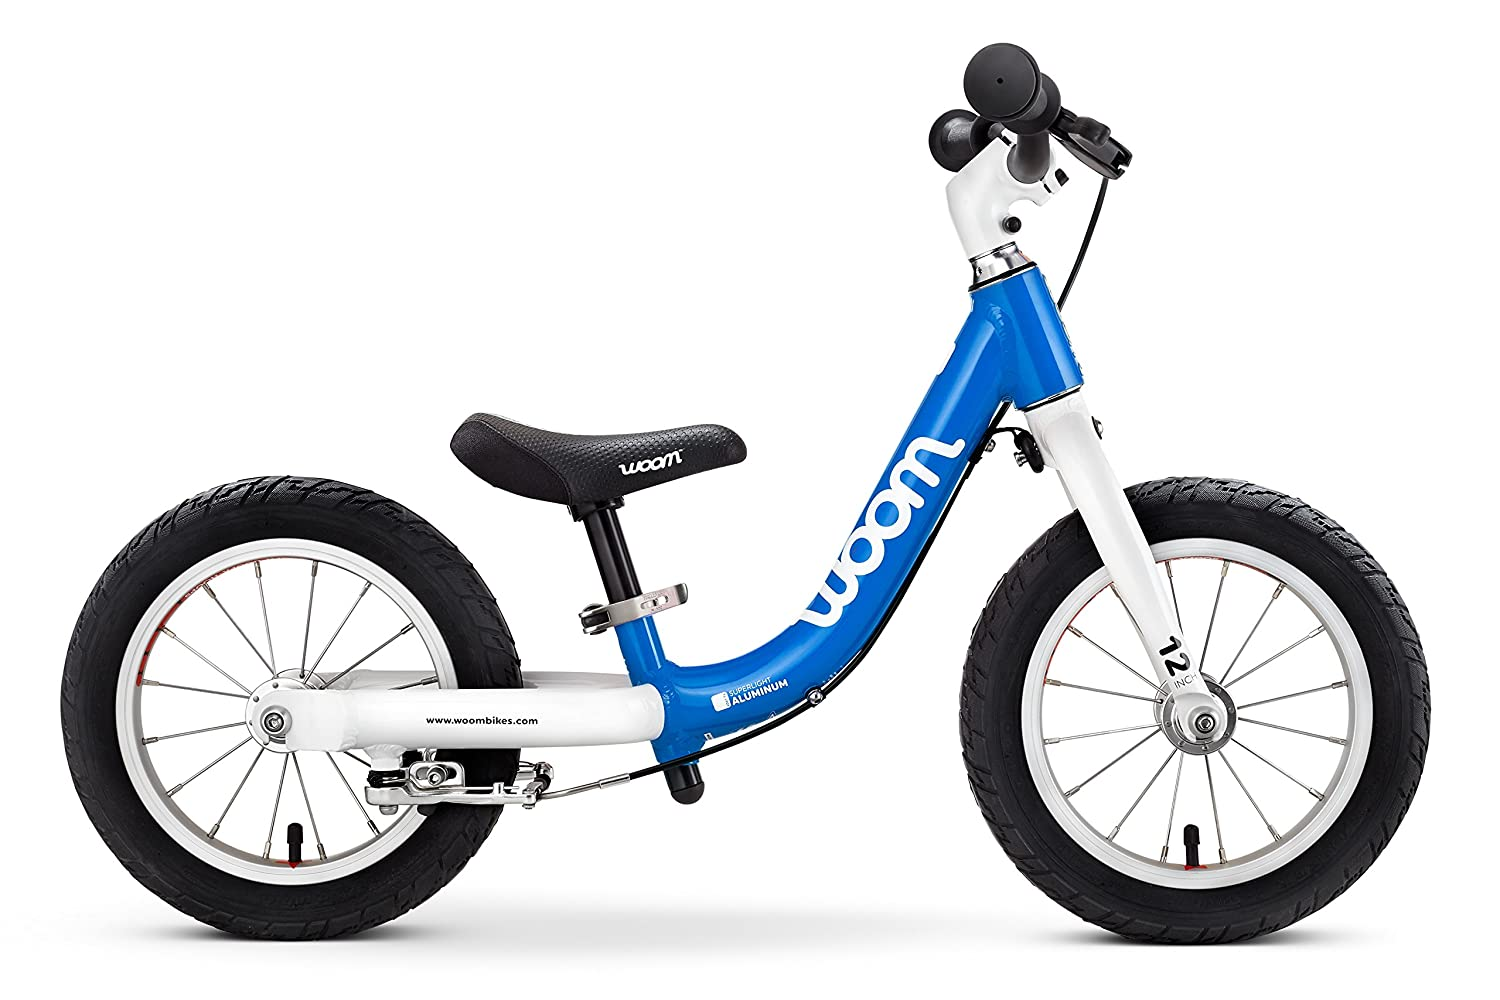 "Woom 1 Balance Bike 12"", Ages 18 Months to 3.5 Years"